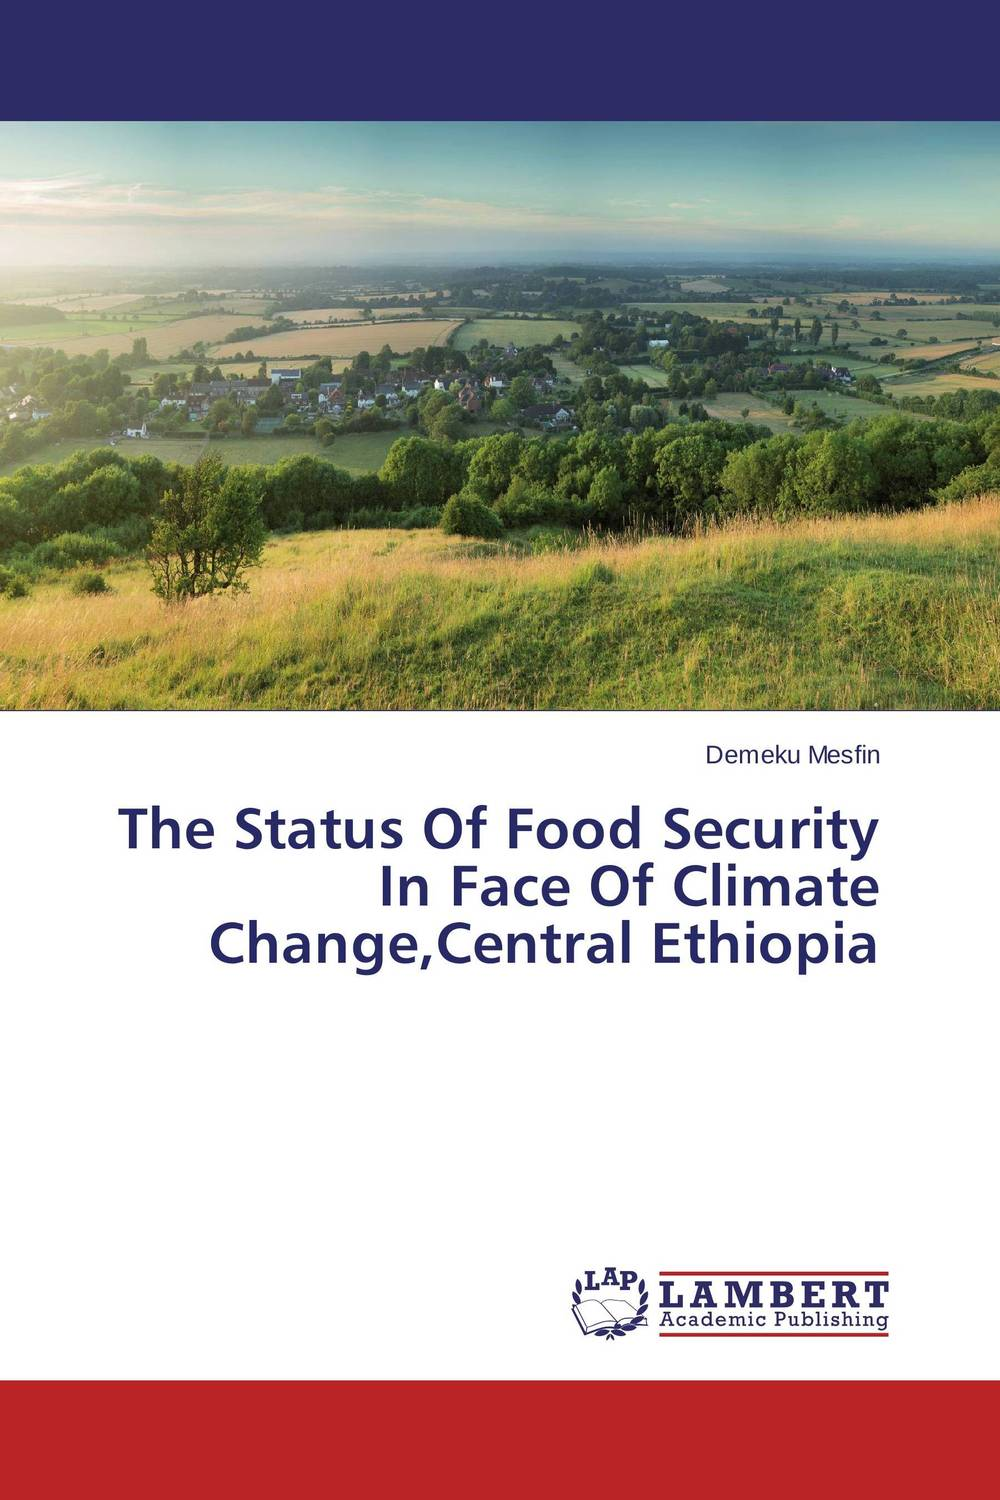 The Status Of Food Security In Face Of Climate Change,Central Ethiopia educational change in ethiopia